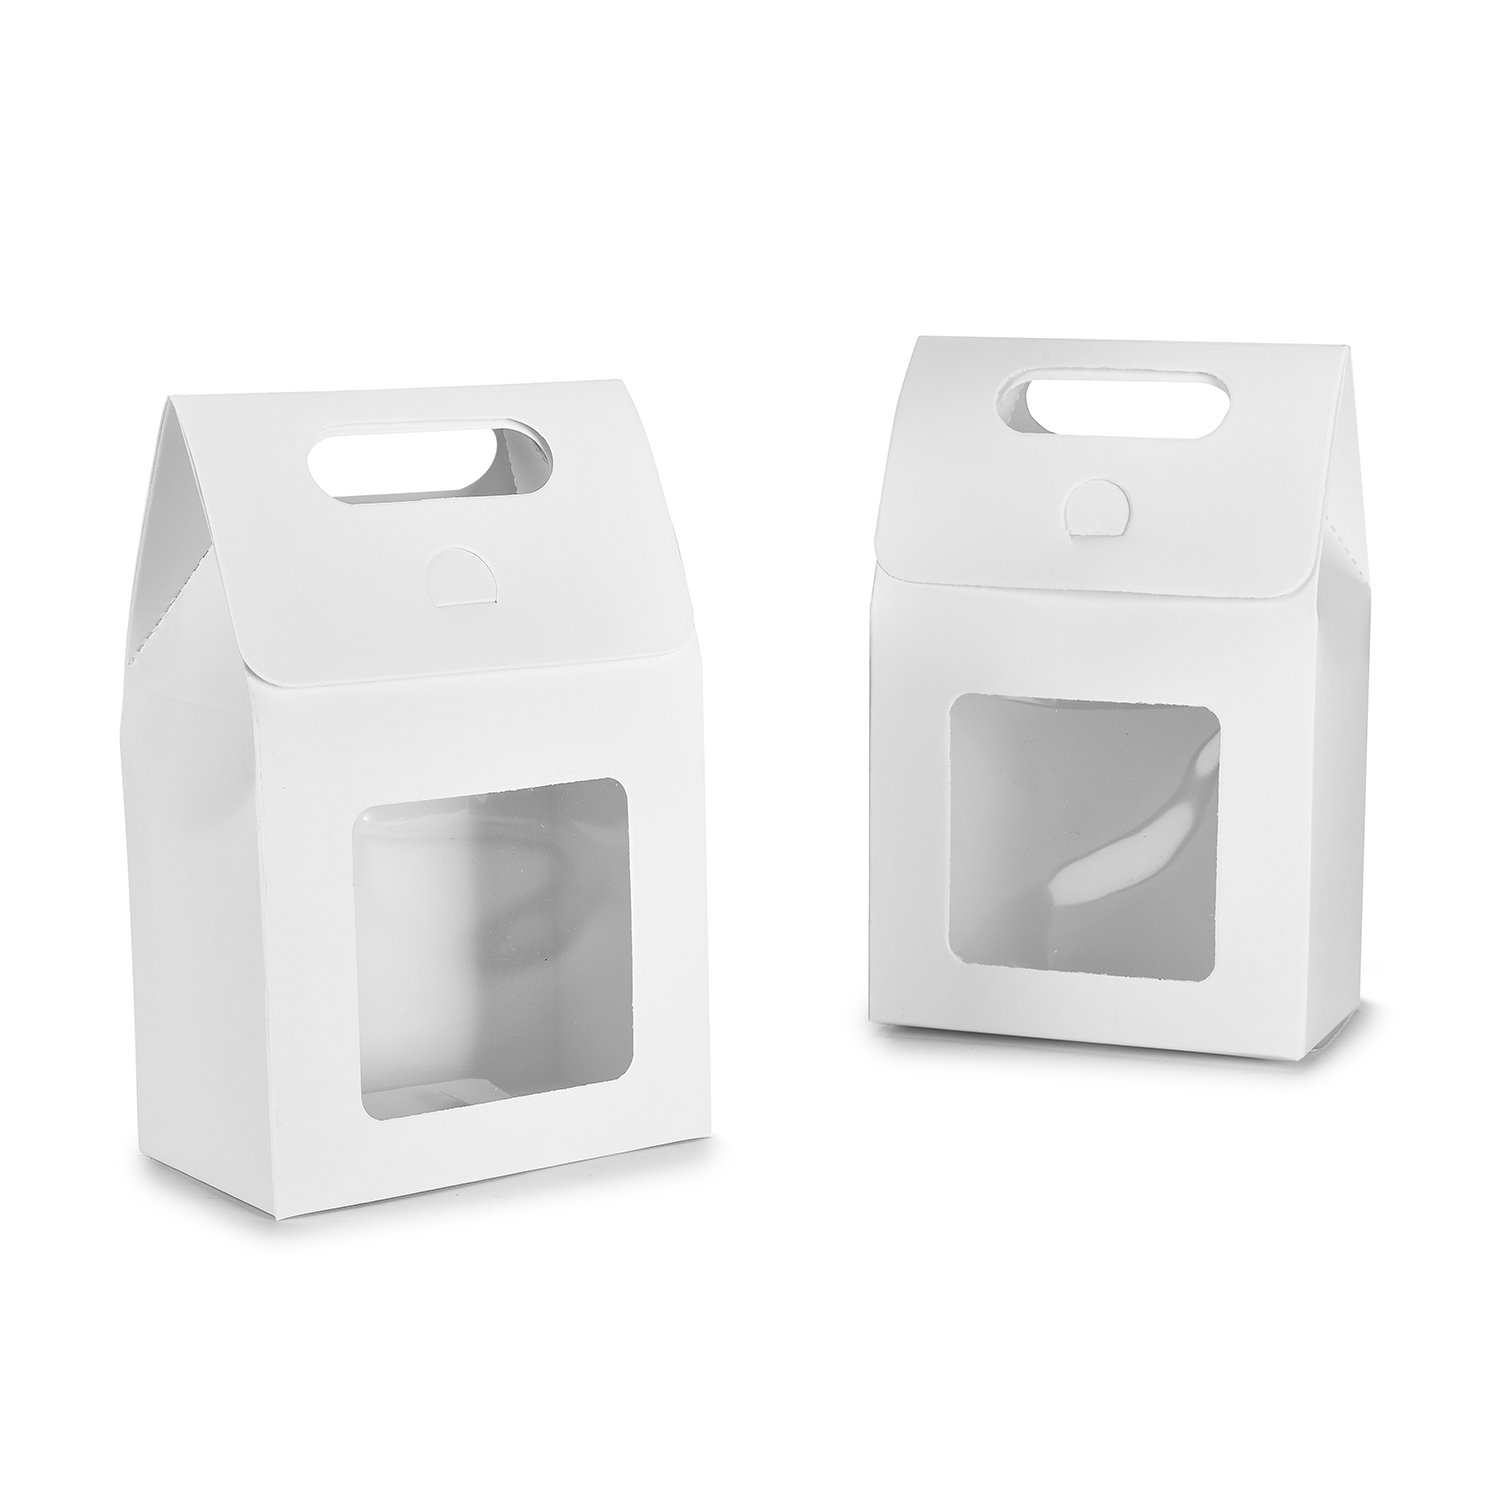 TTOYOUU Paper Cookies/Candy/Cake/Coffee/Tea/Nuts Bags, 24pcs Paper Food Cookies/Candy/Cake/Coffee/Tea/Nuts Stand up Square Box Bags with Clear Window (White)